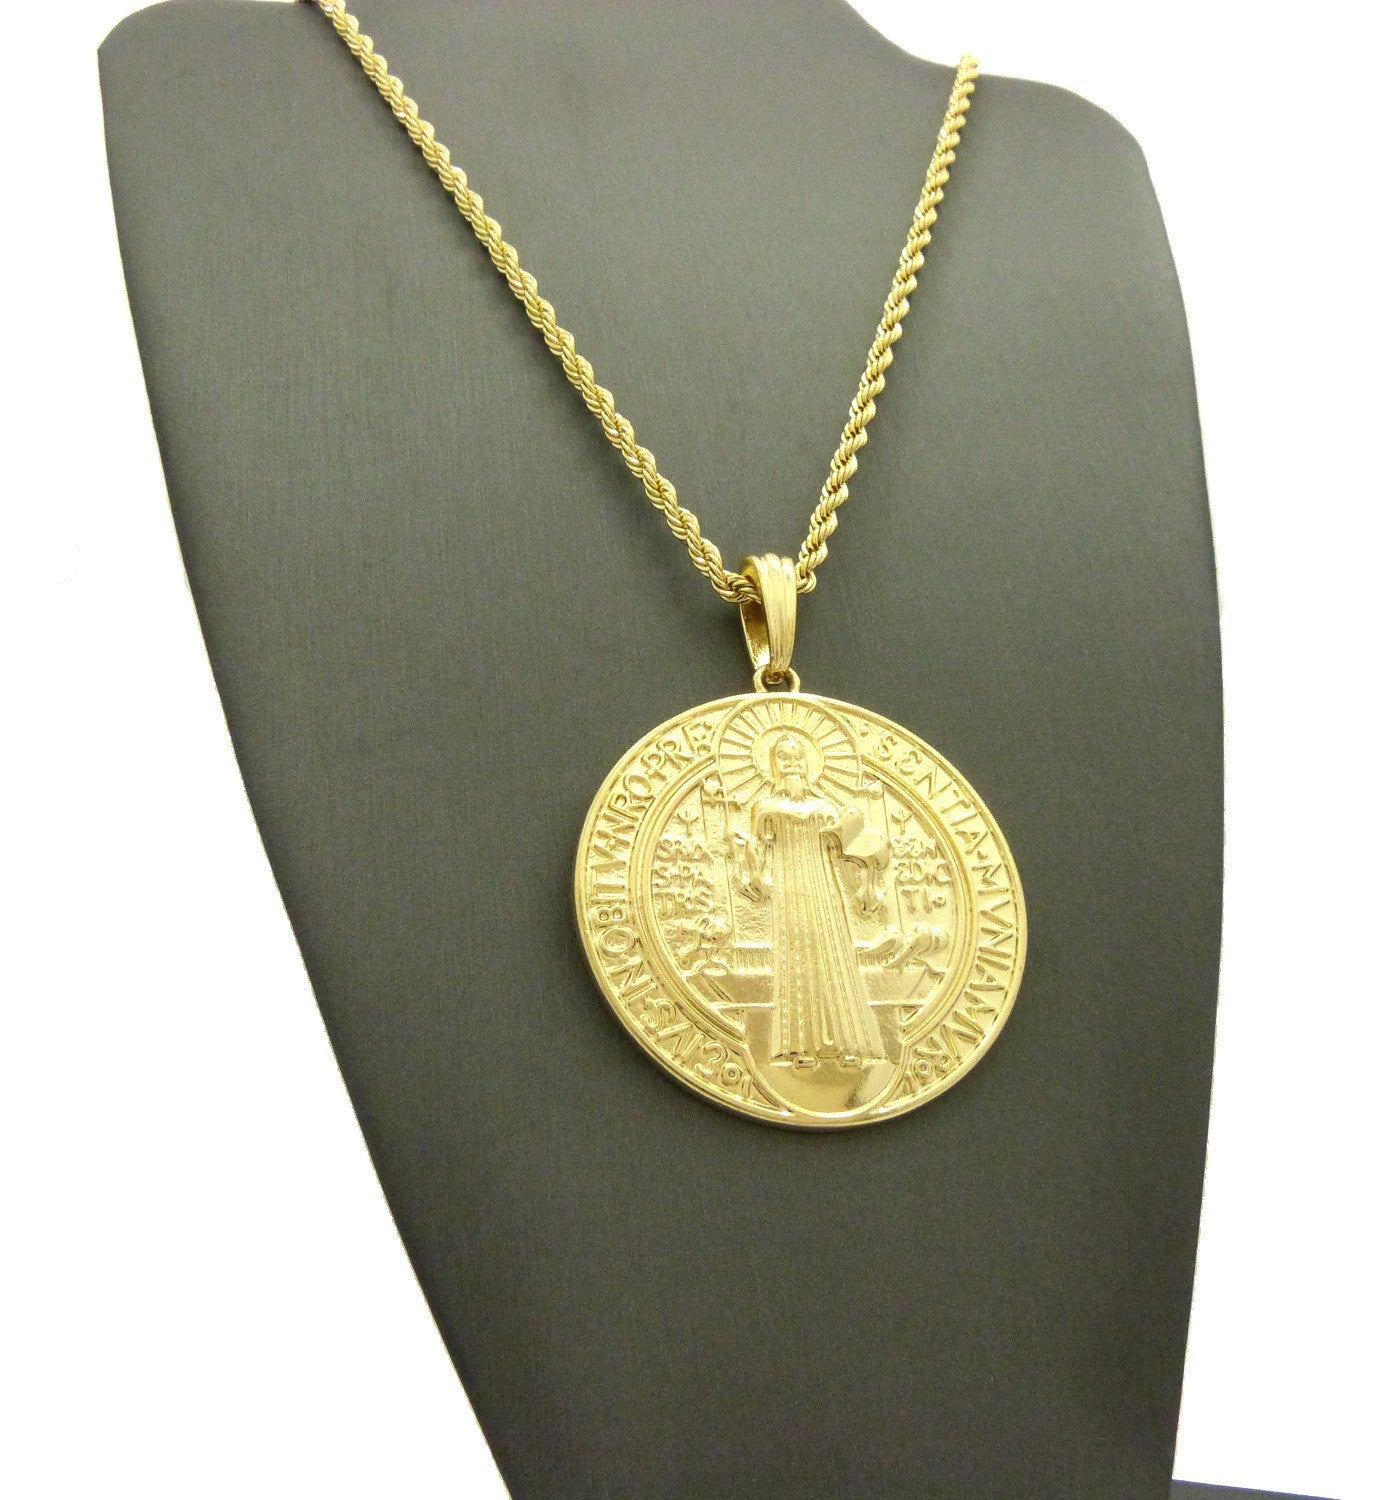 necklace on gold medallion chain nightline layered pendants wearuniquely chains chunk pin